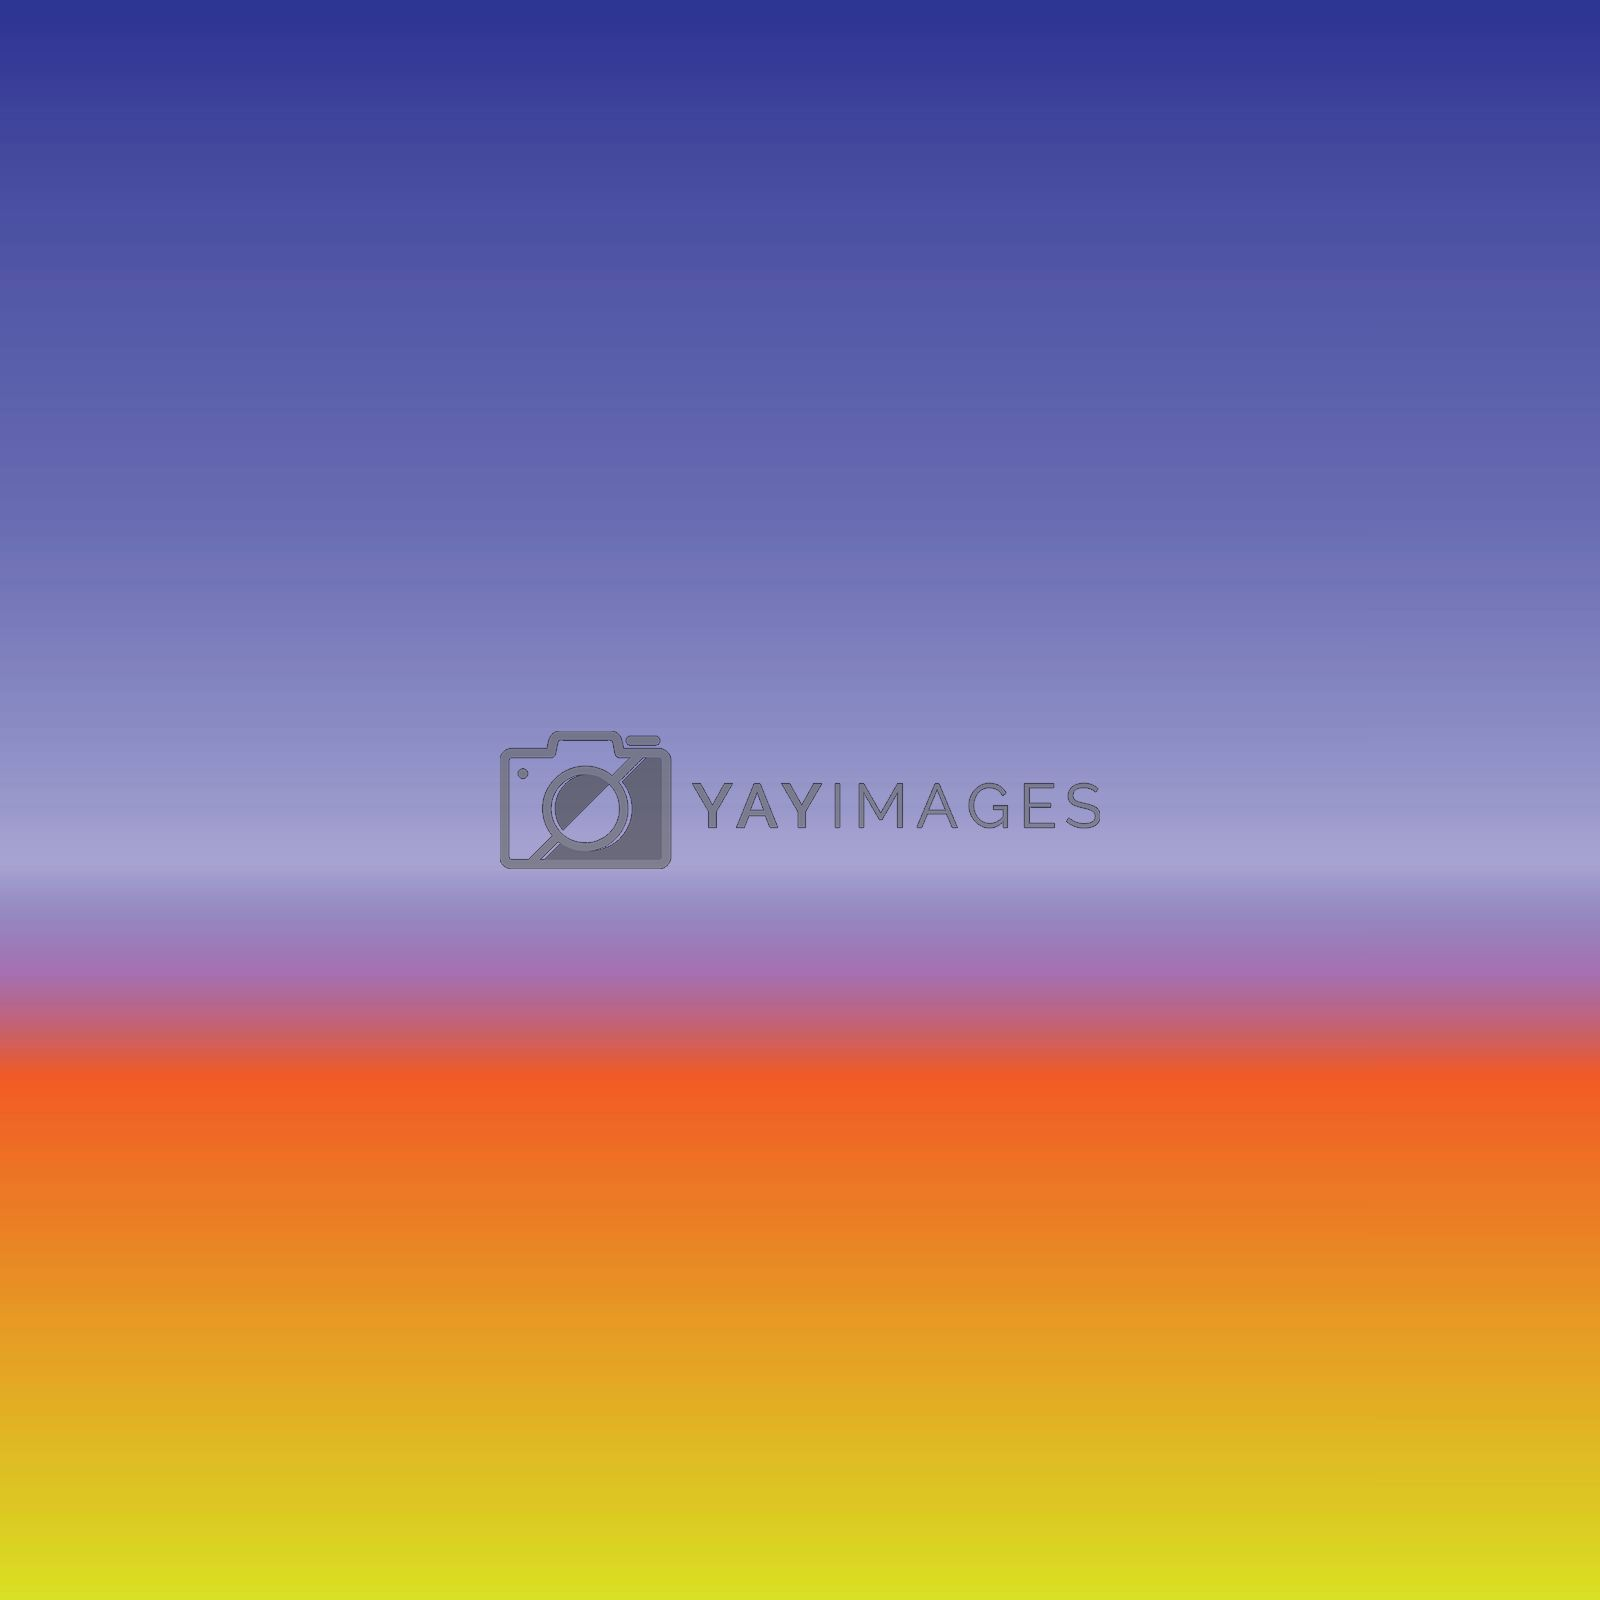 Vibrant and smooth gradient color background for your design. Vector illustration